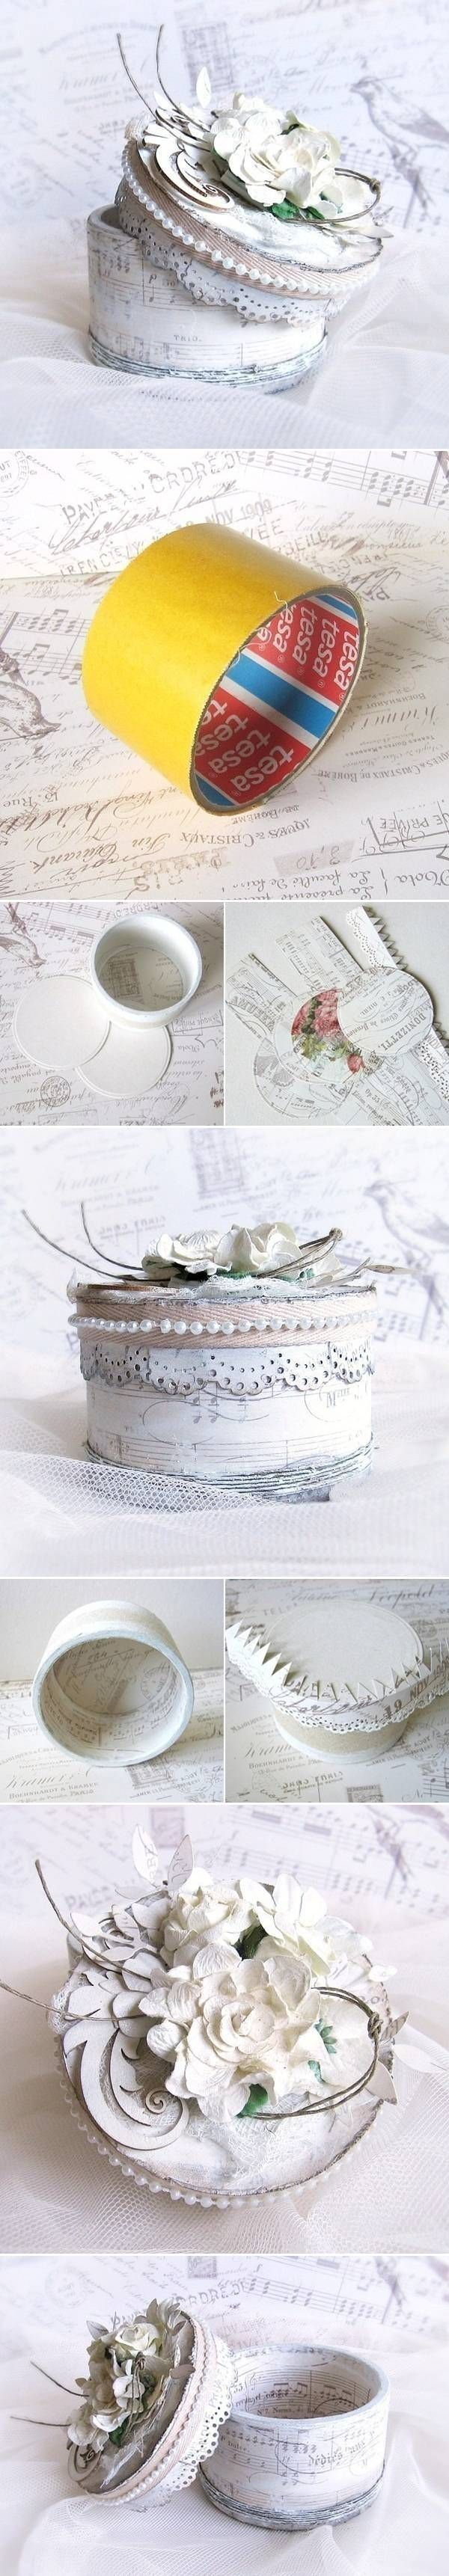 27 DIY Trinket Boxes to Keep Your Bling Organized ...                                                                                                                                                                                 More